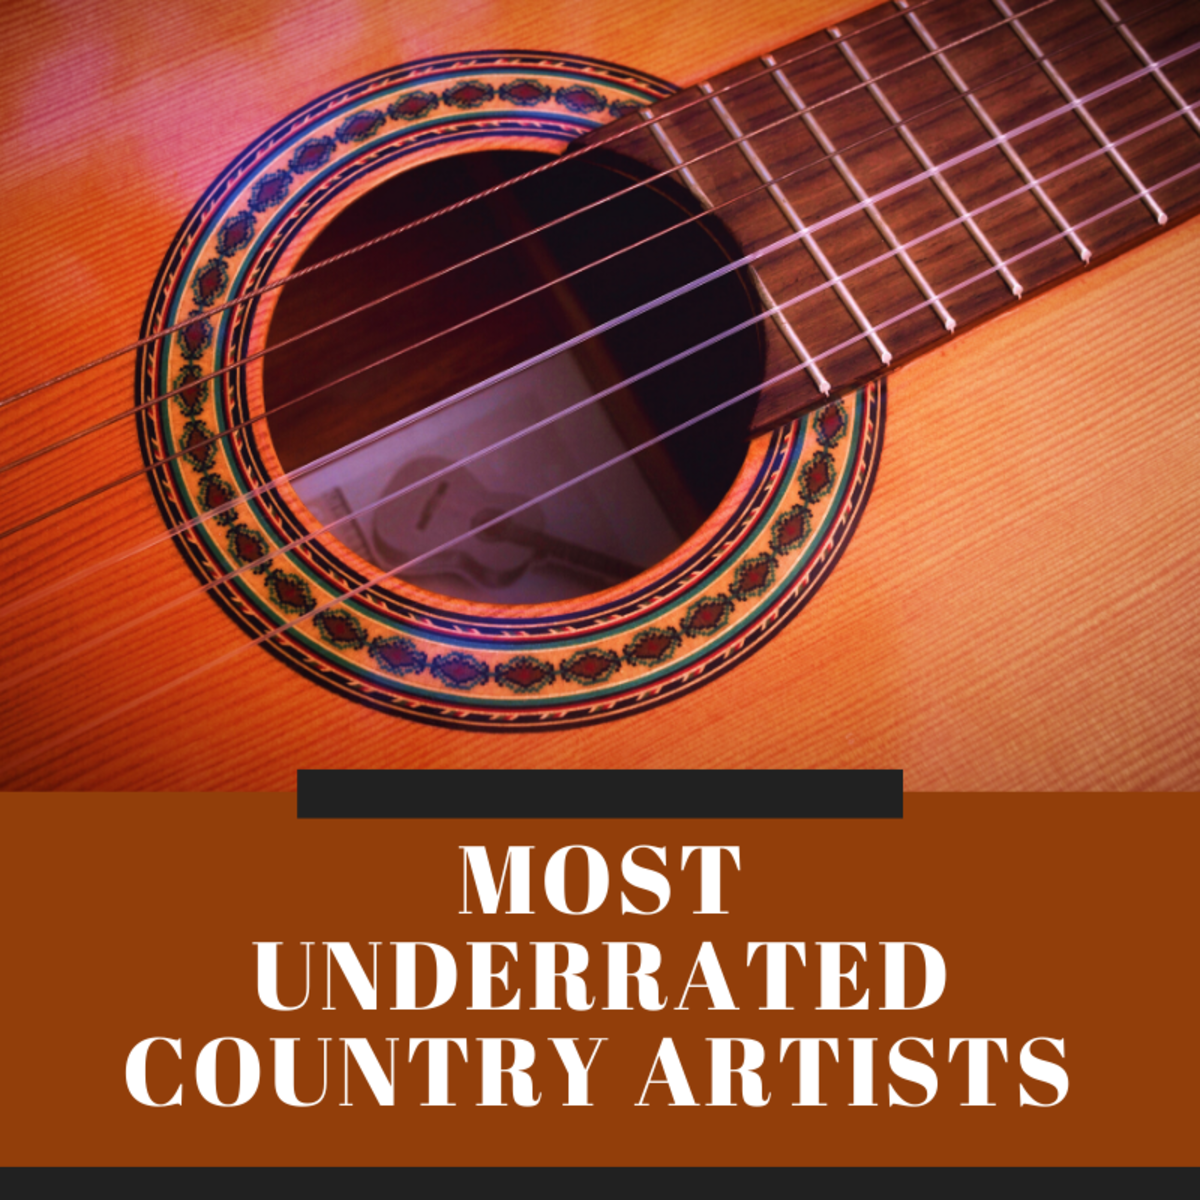 These underrated country music artists prove that country music is alive and well.